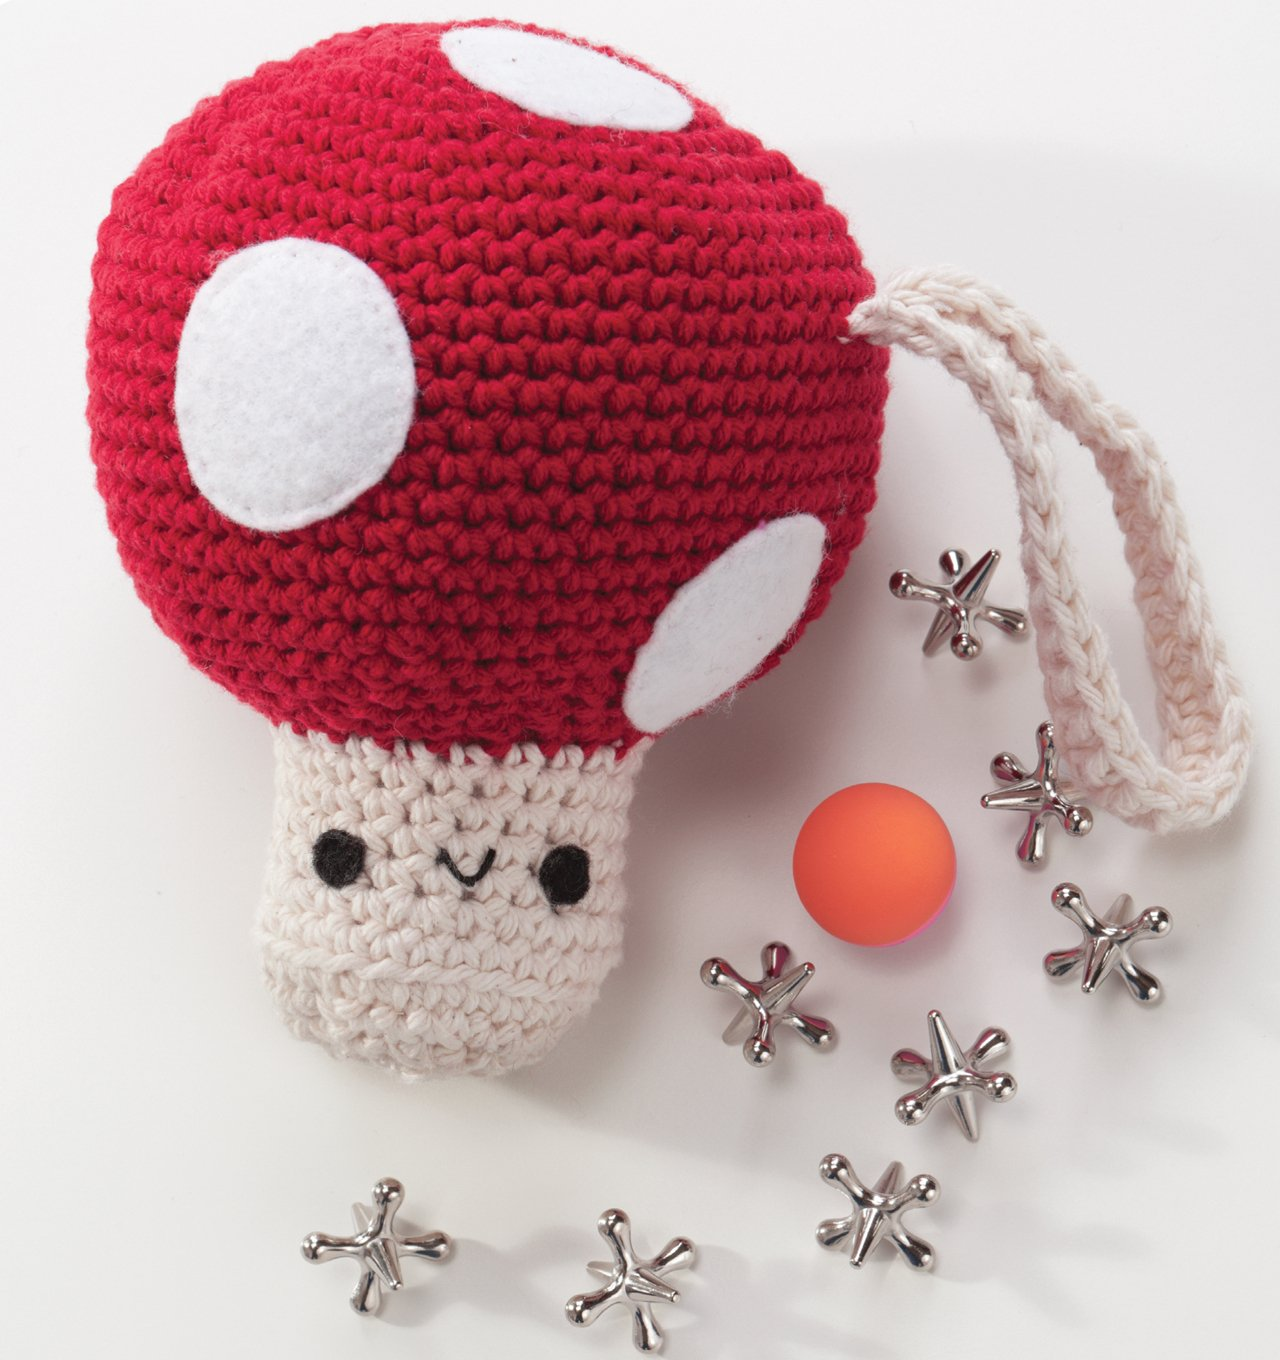 Amigurumi On The Go 30 Patterns For Crocheting Kids Bags